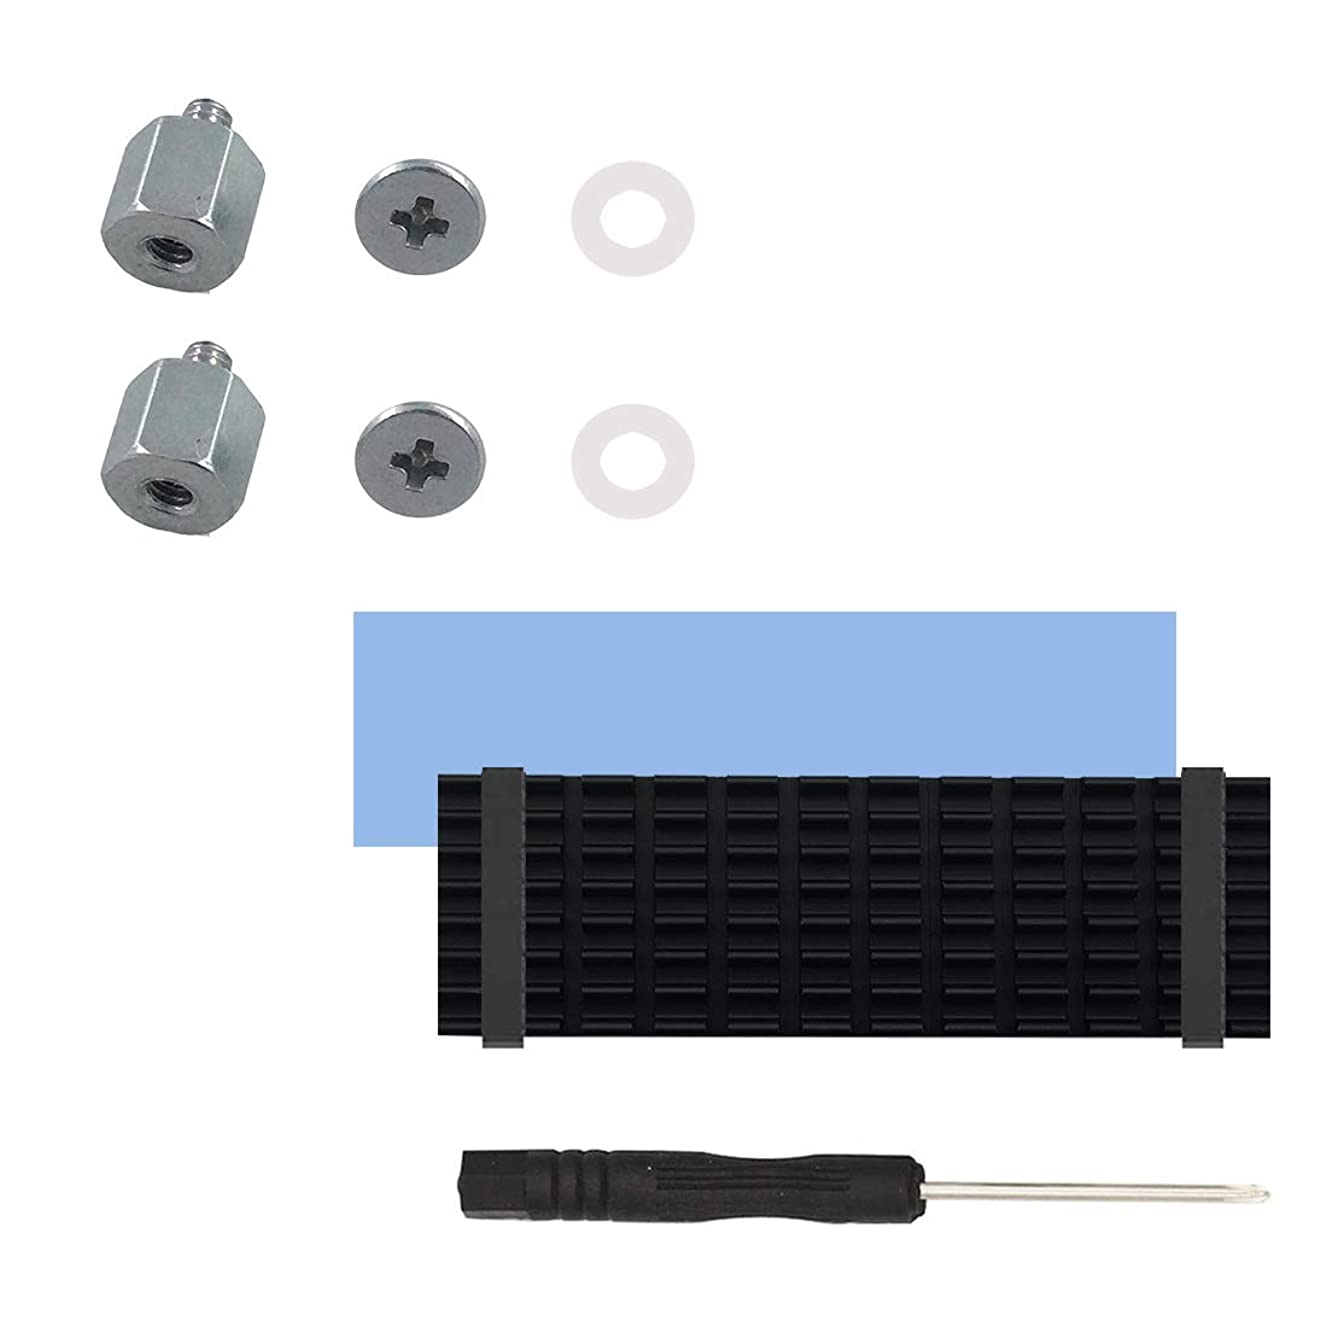 SGTKJSJS M.2 Screw Heatsink Kit,NVMe Screw m.2 Cooling Mounting 2280Thermal pad Kit